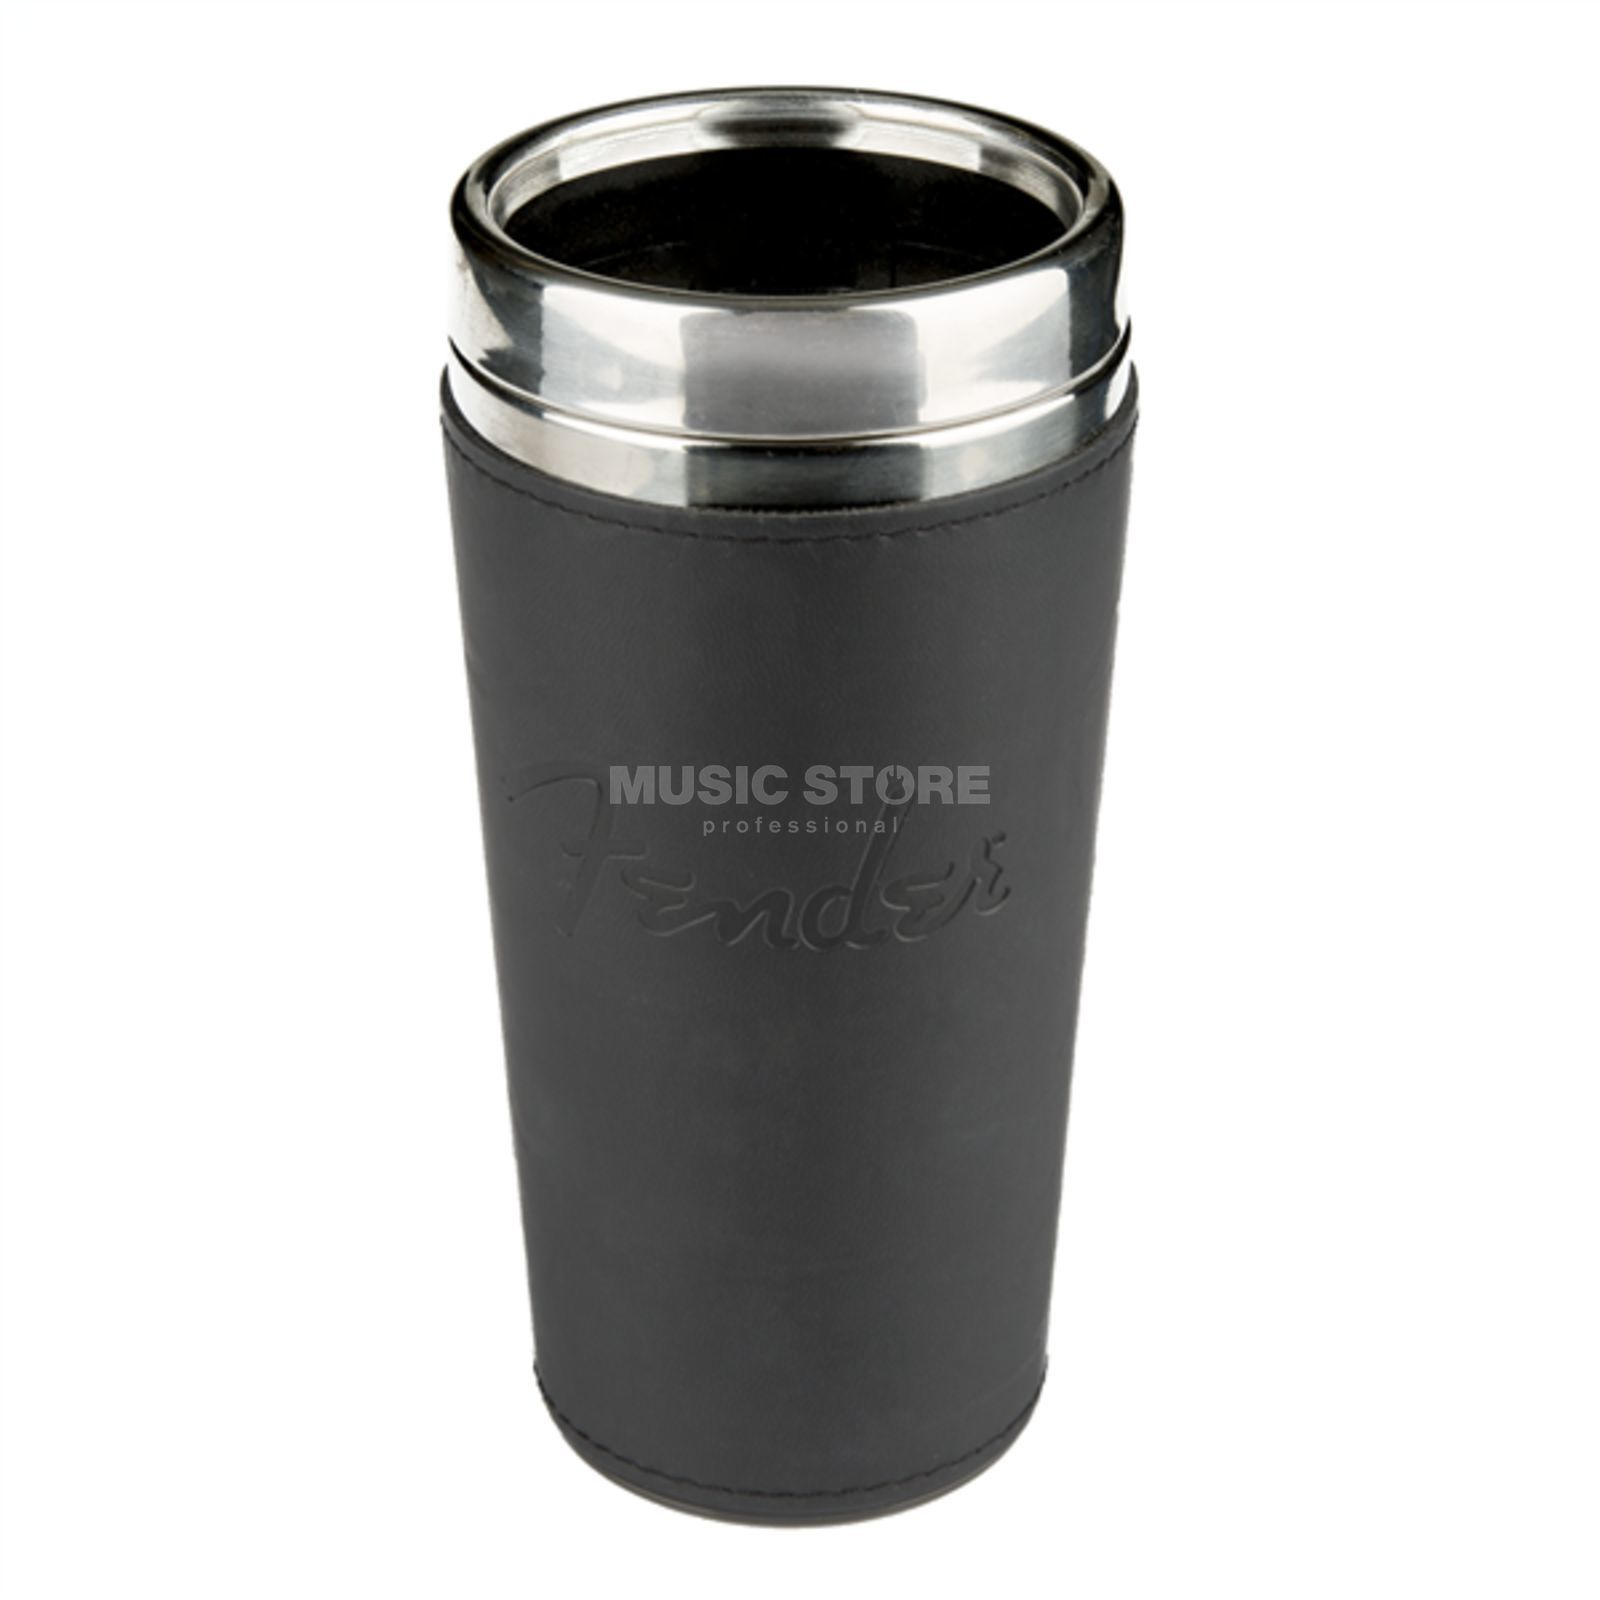 Fender Blackout Travel Mug Product Image